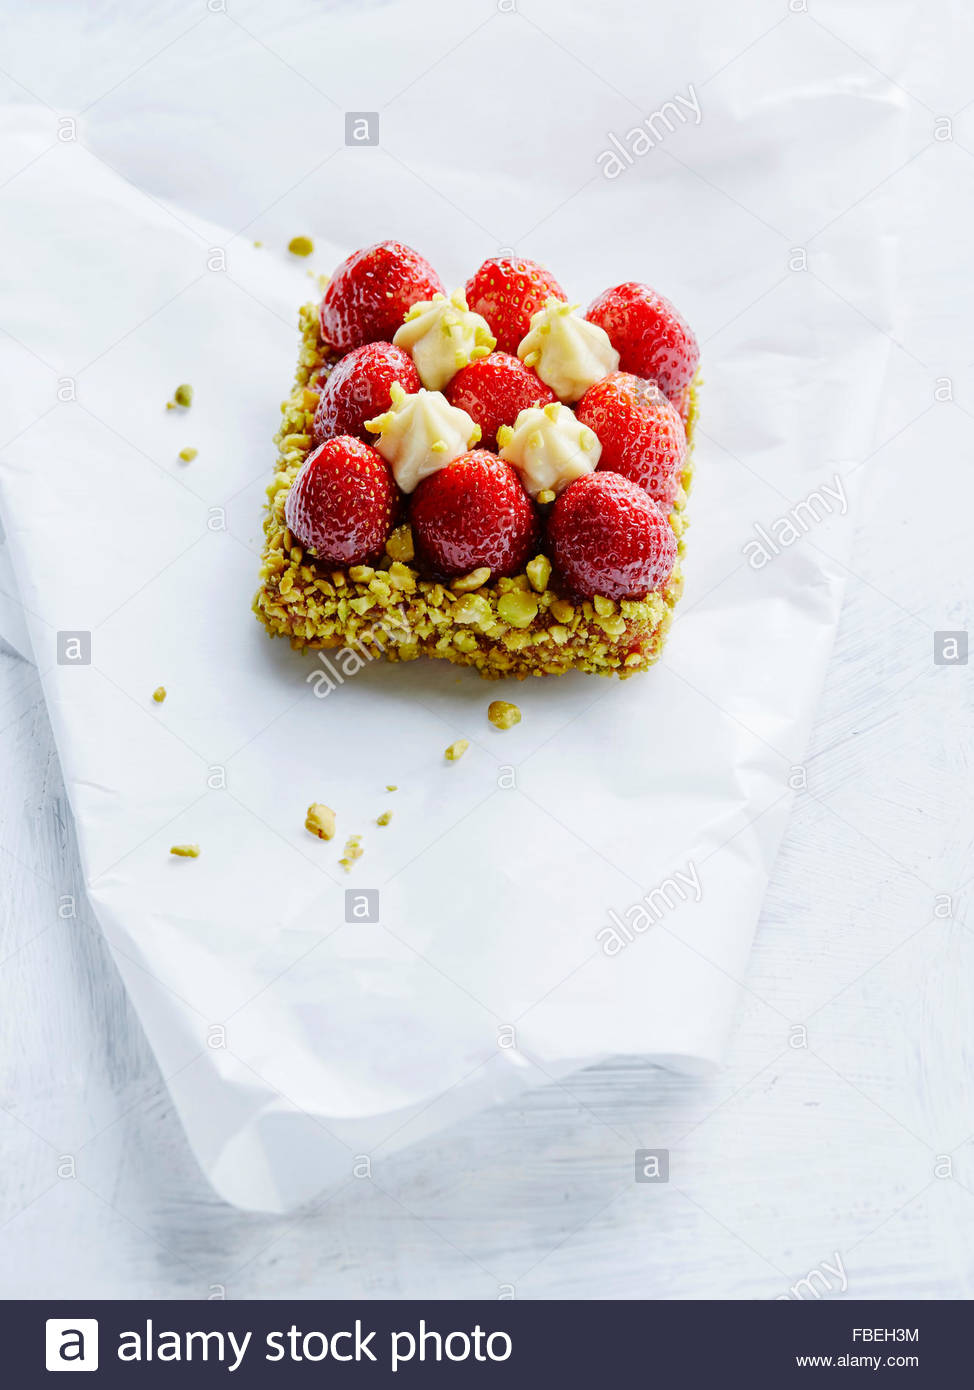 The closeup of strawberry tatalete with pistachios - Stock Image